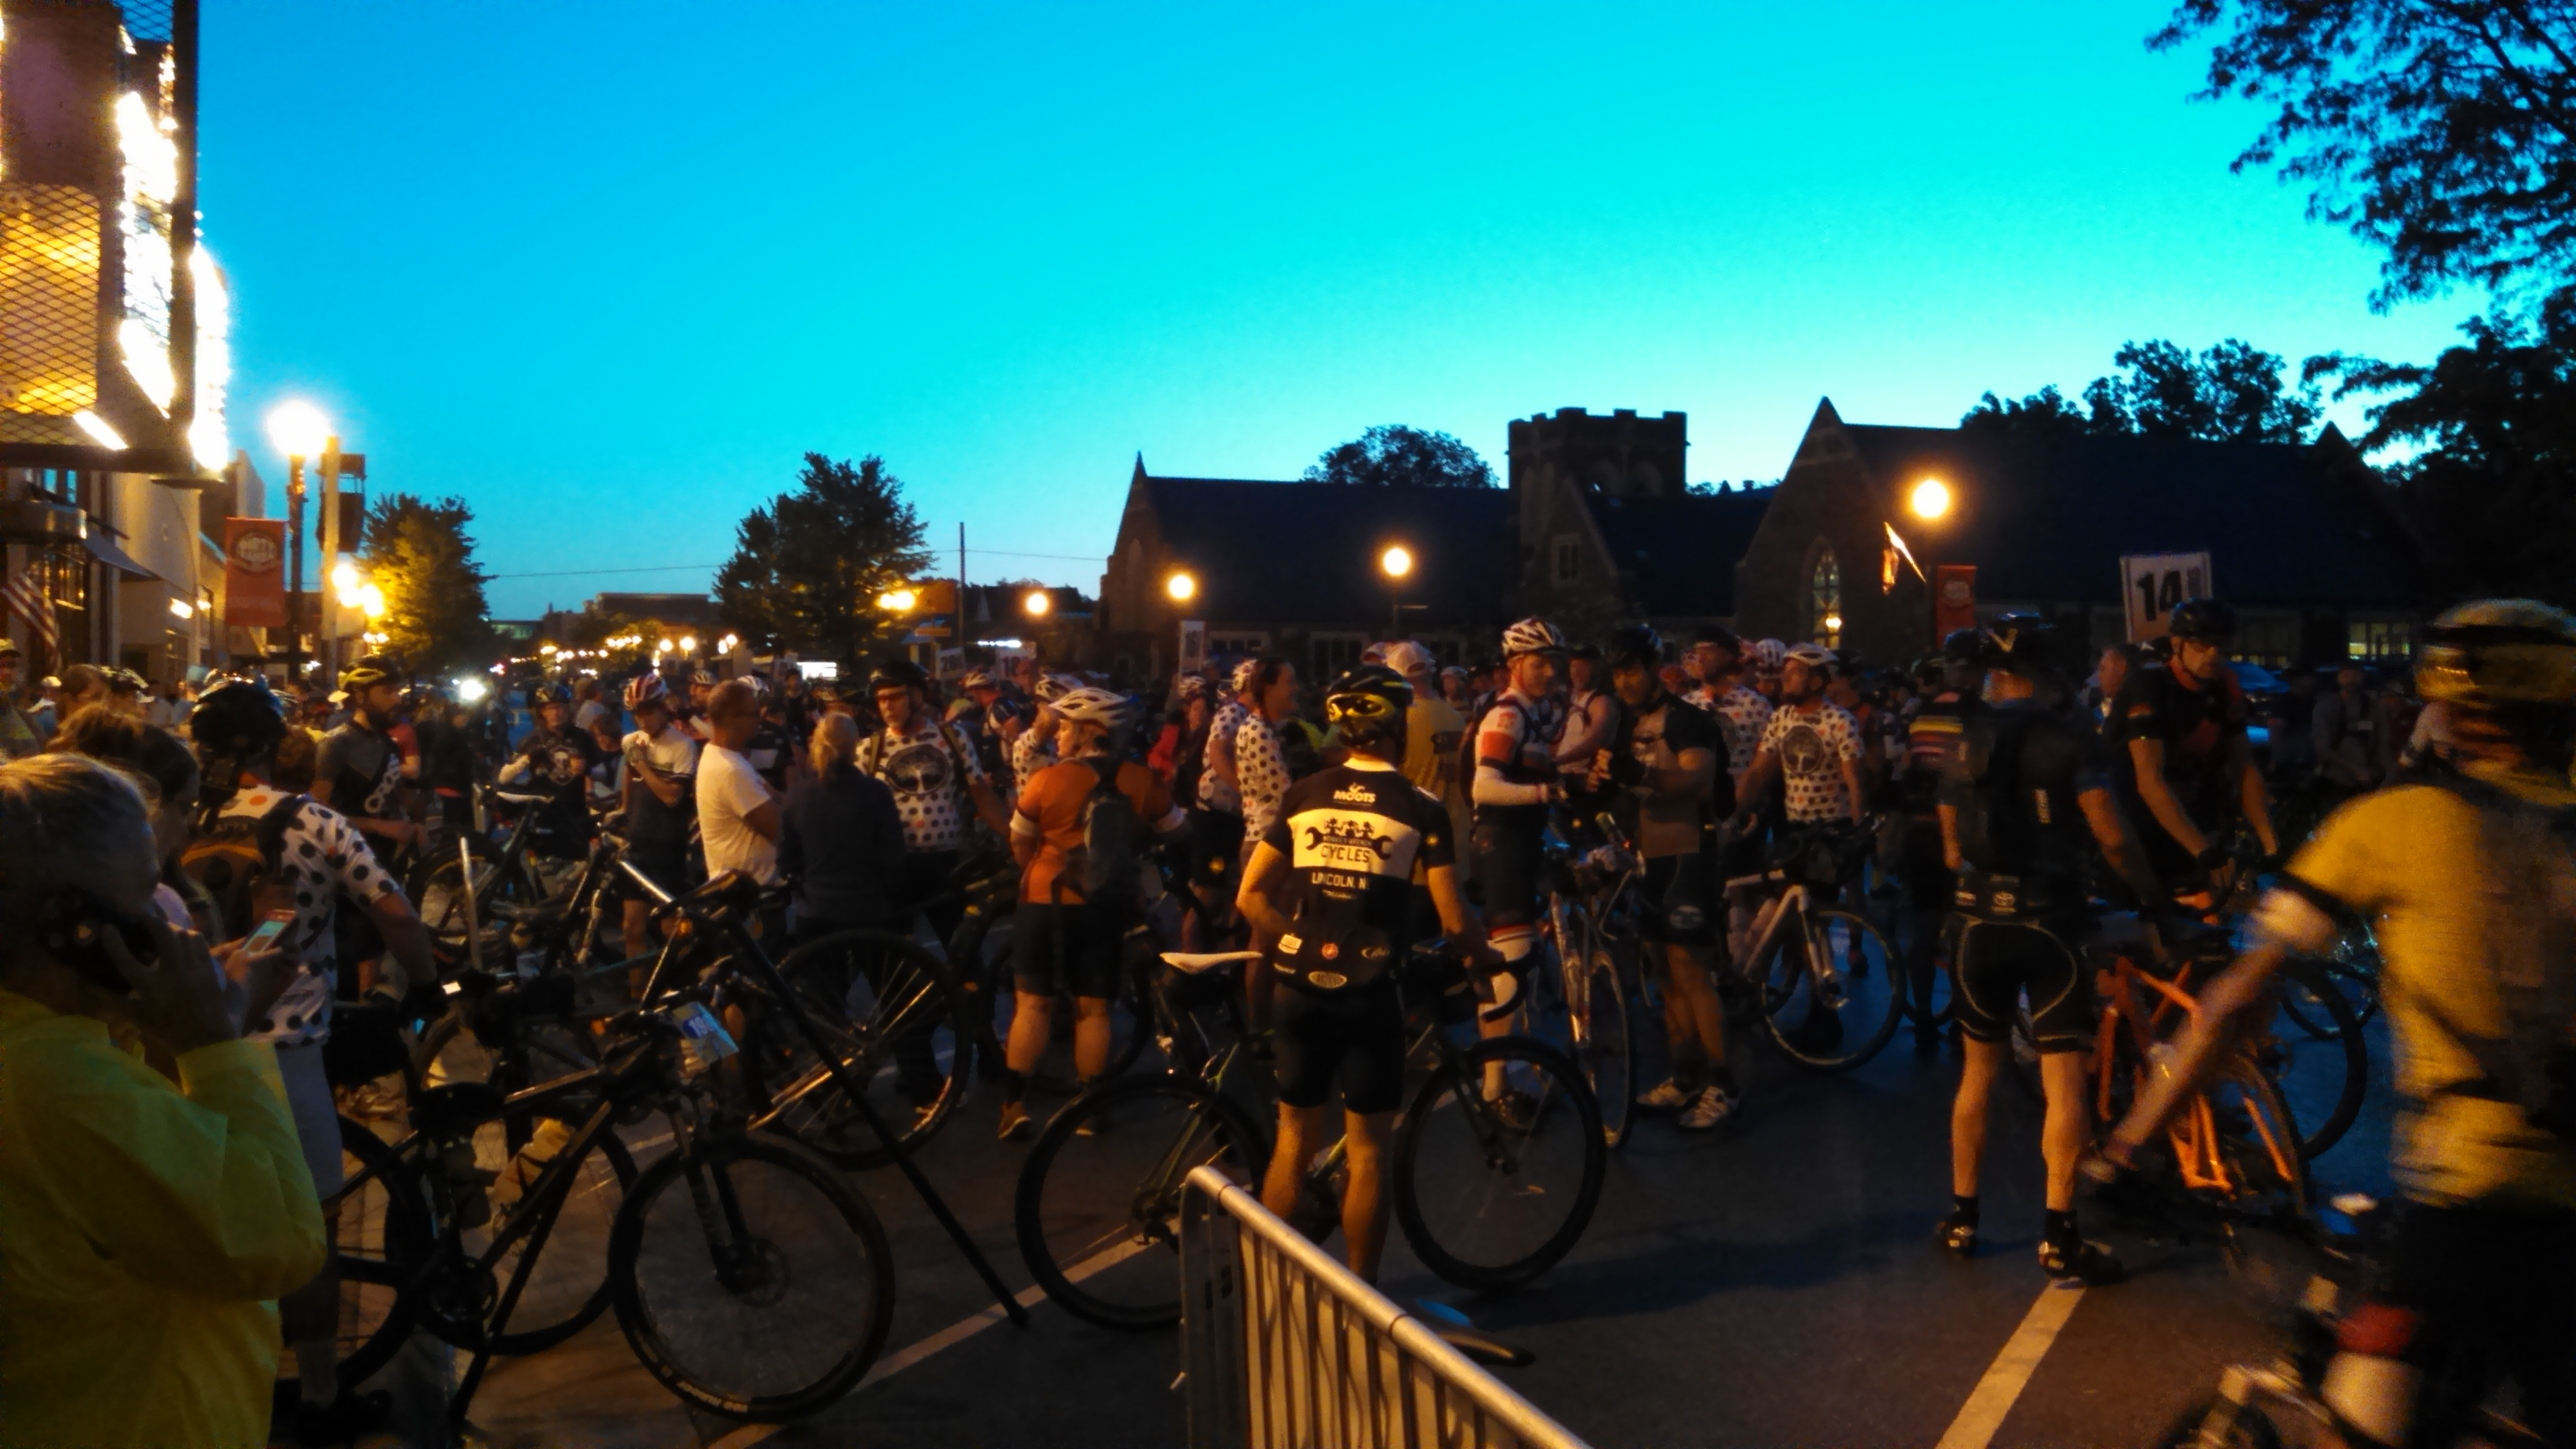 Riders gathered in Emporia in the pre-dawn hours for the start of the 2016 Dirty Kanza (Photo by Greg Echlin)